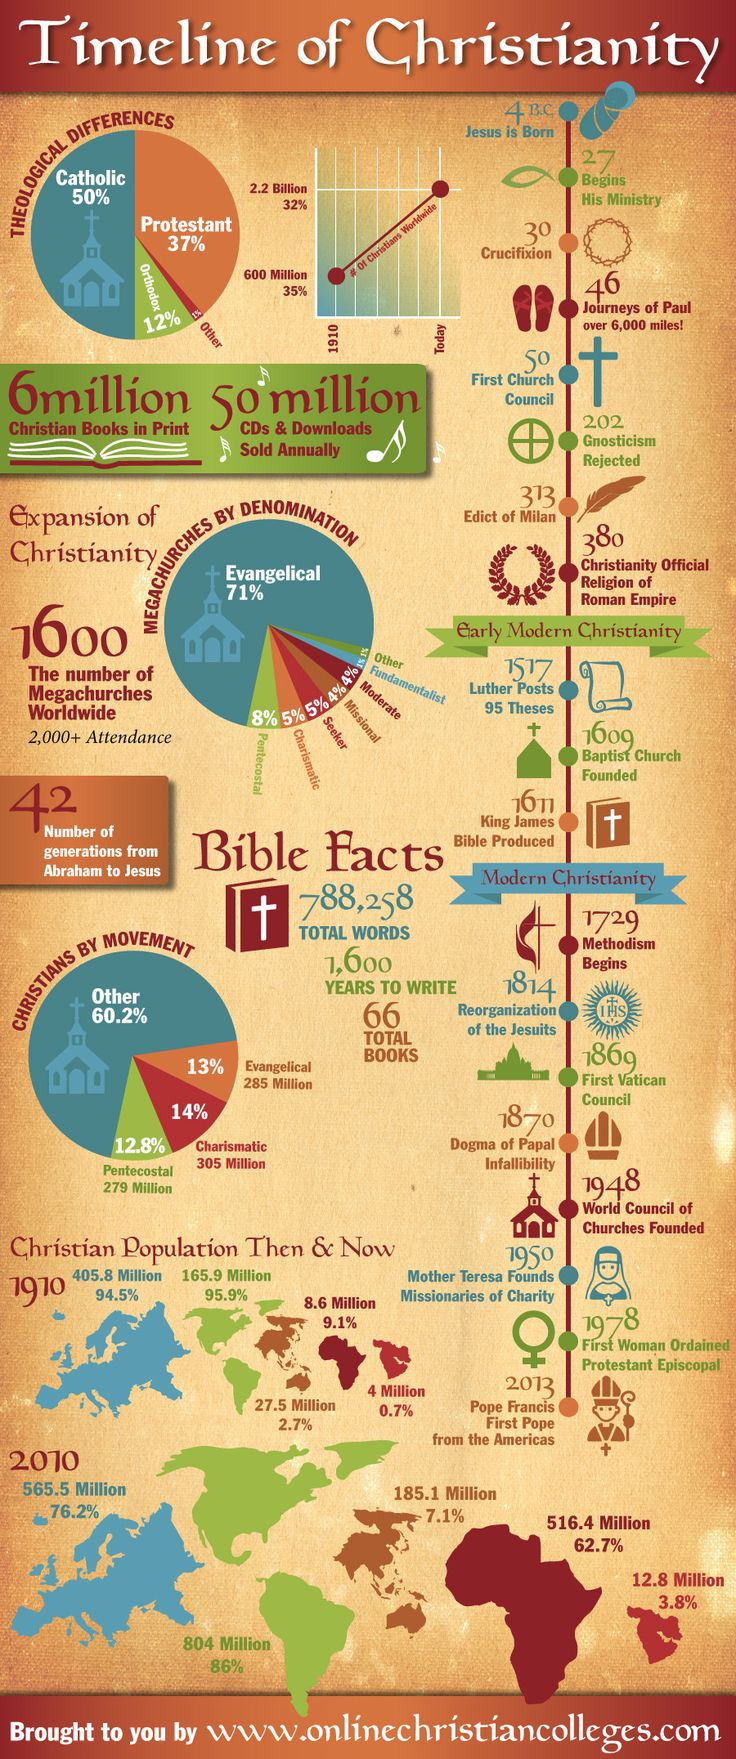 Brief Timeline of Christian History